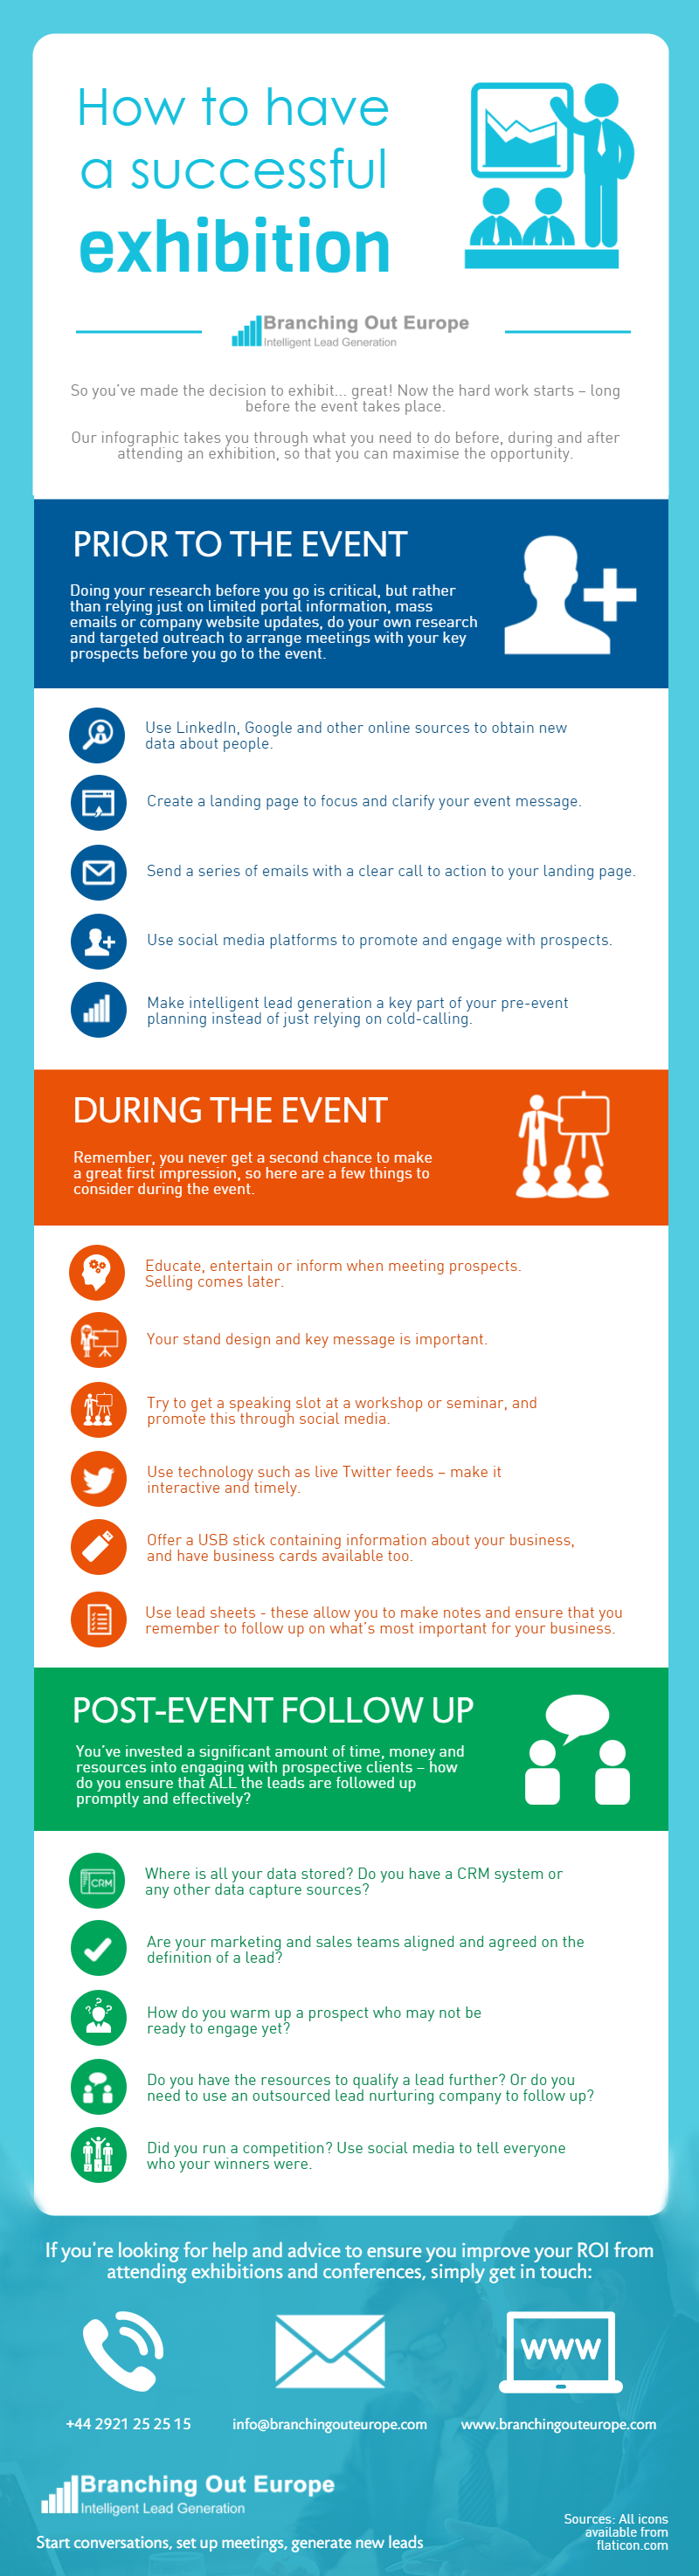 How To Have A Successful Exhibition #infographic